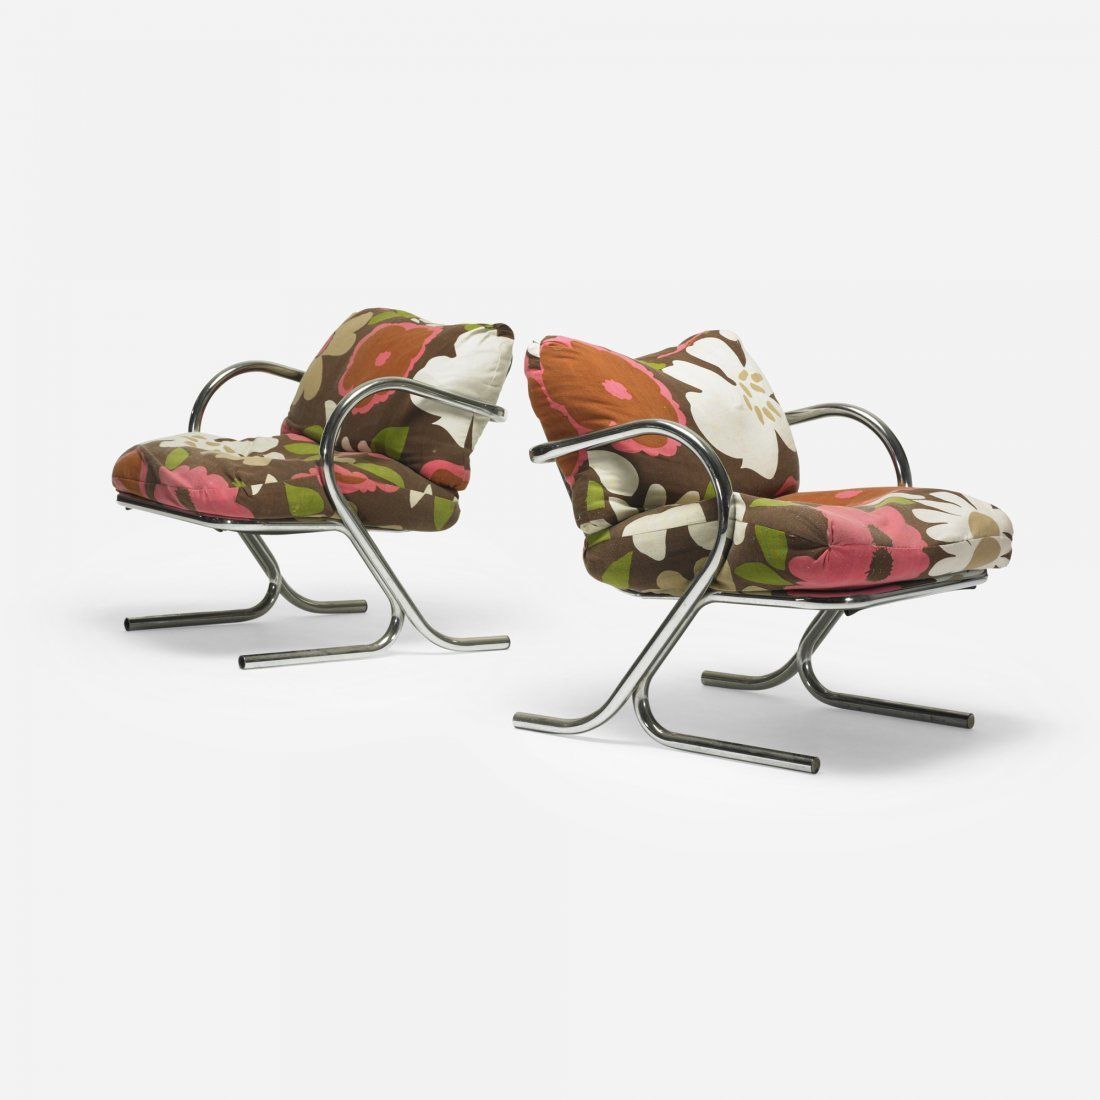 108: American lounge chairs, pair